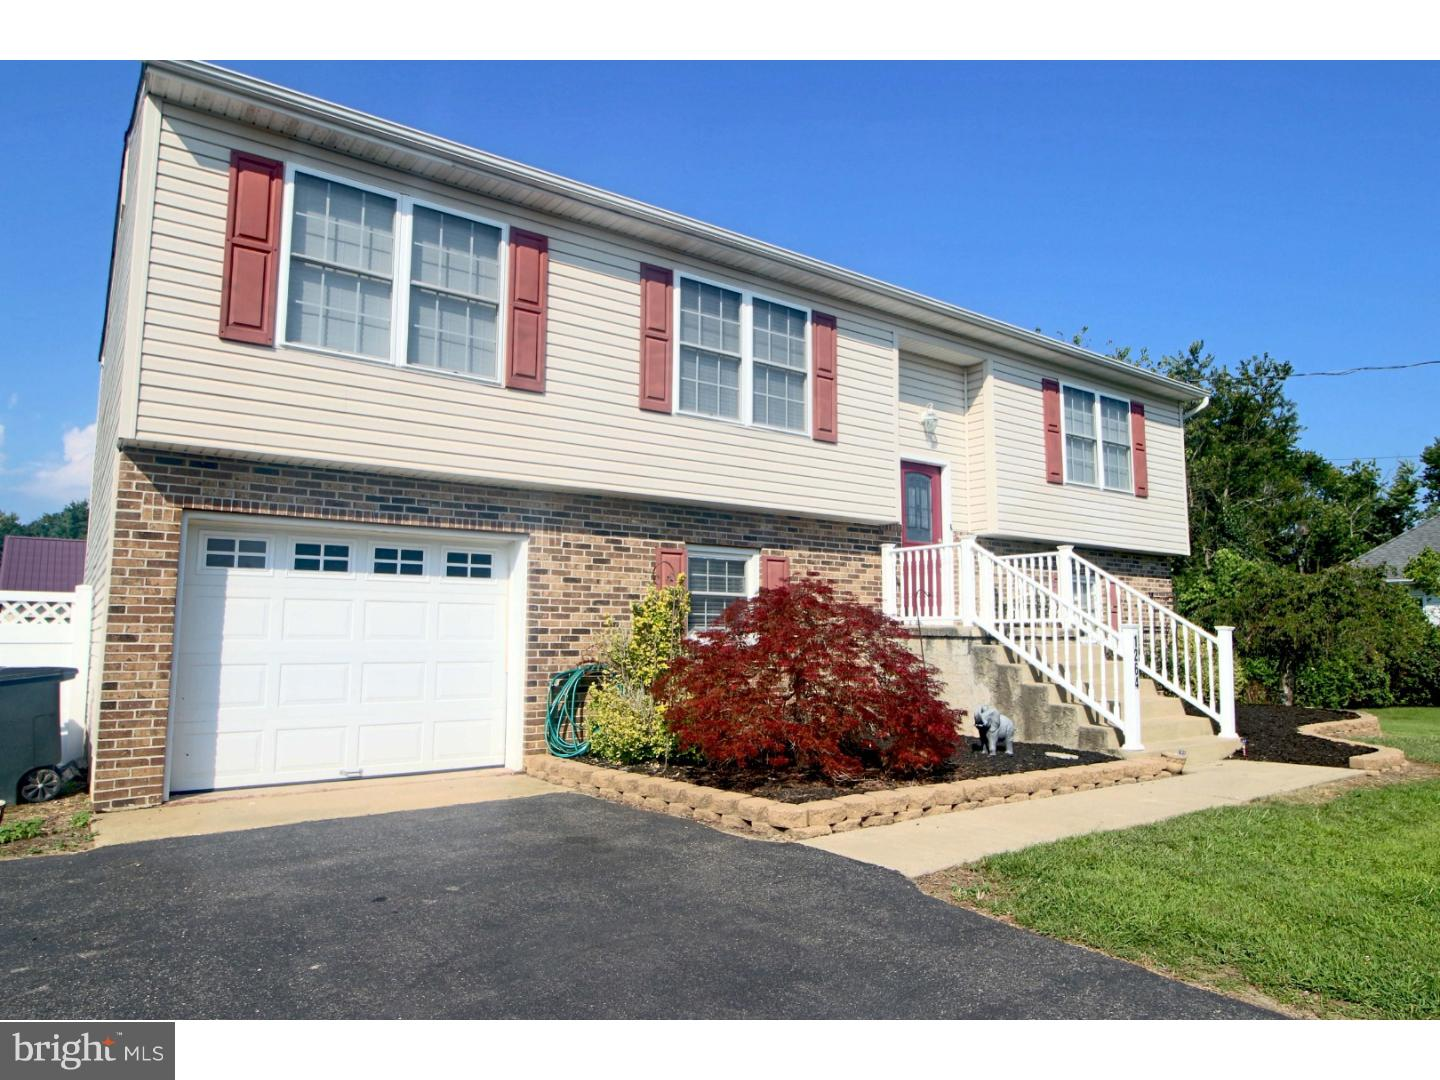 Single Family Home for Sale at 1264 MIDDLE Avenue Waterford Works, New Jersey 08089 United States